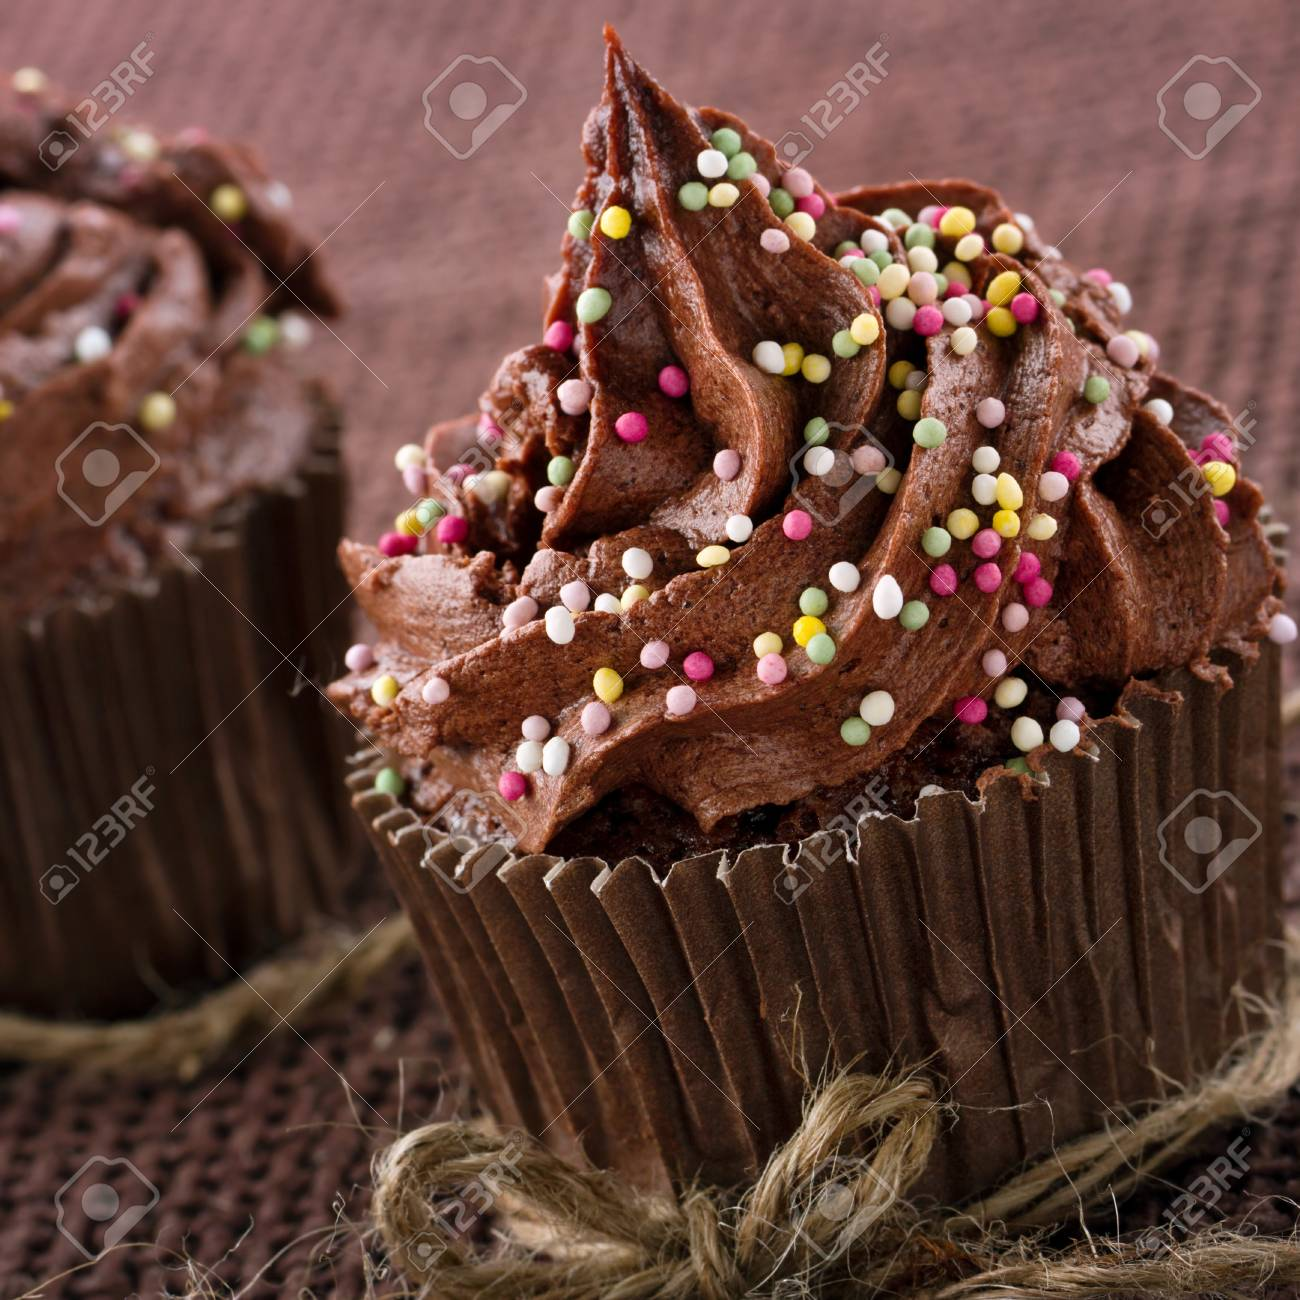 Chocolate Cupcakes With Colorful Sprinkles On Dark Background Stock